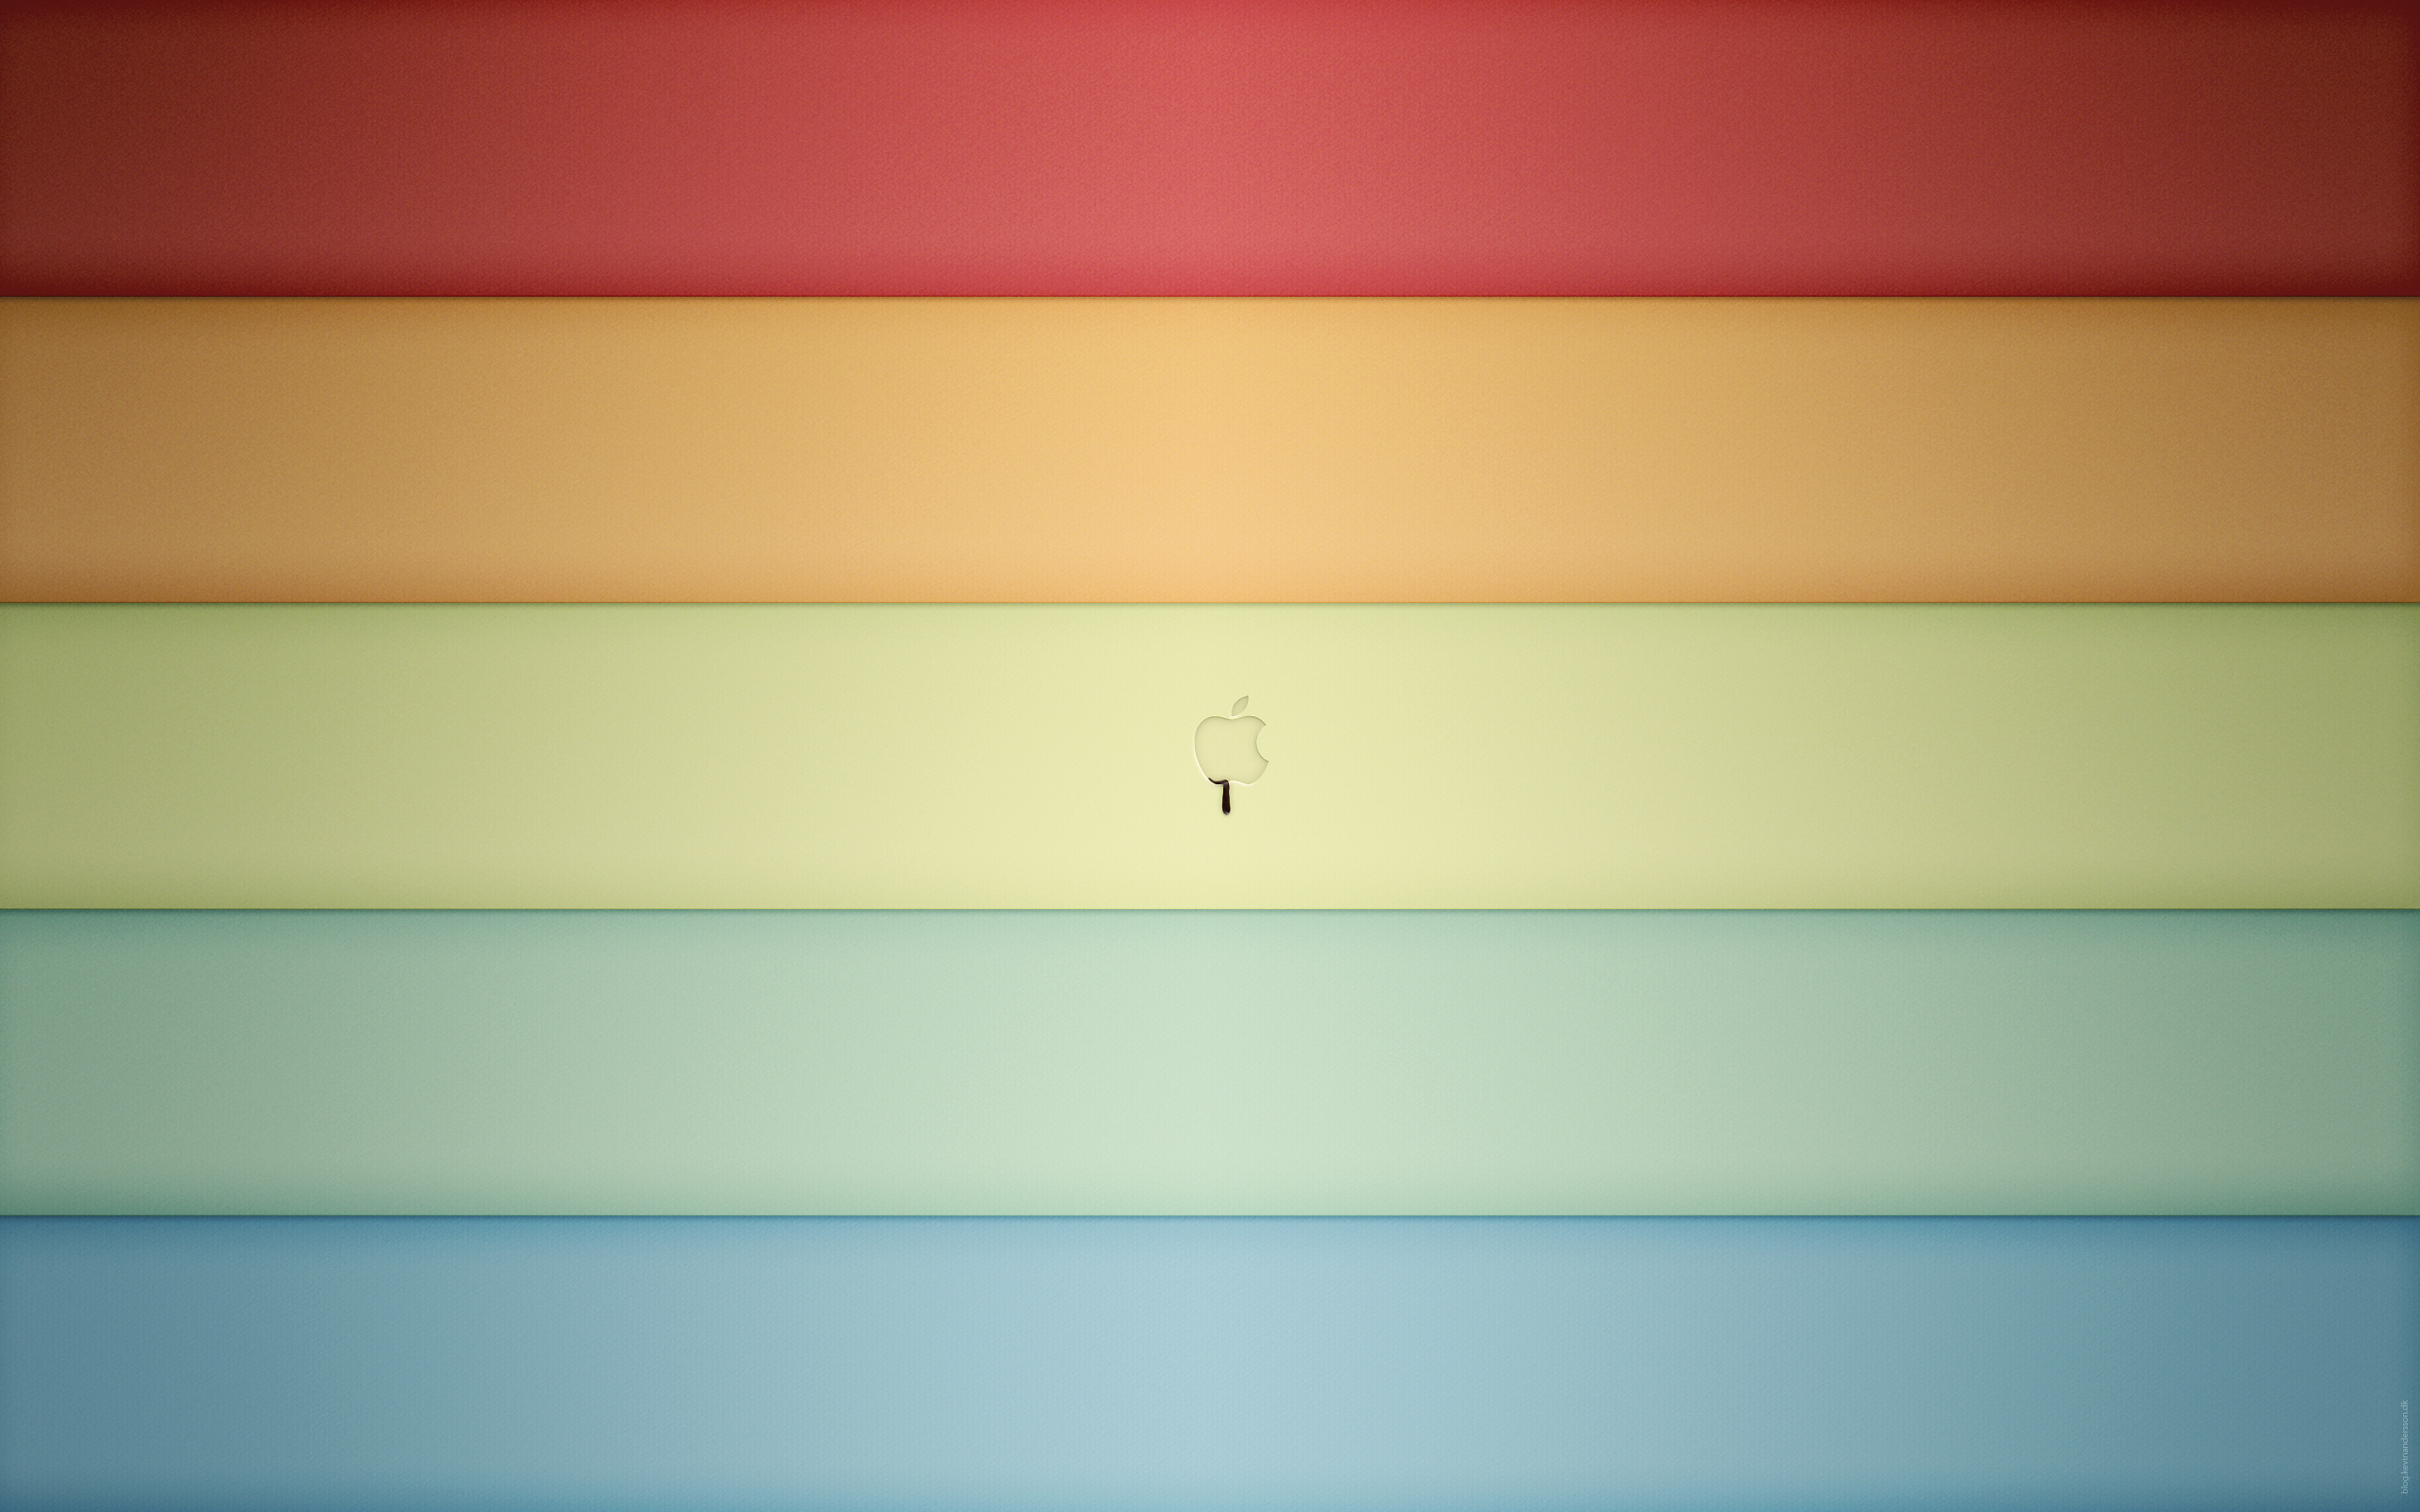 apple color shades wallpapers 9822 2560x1600